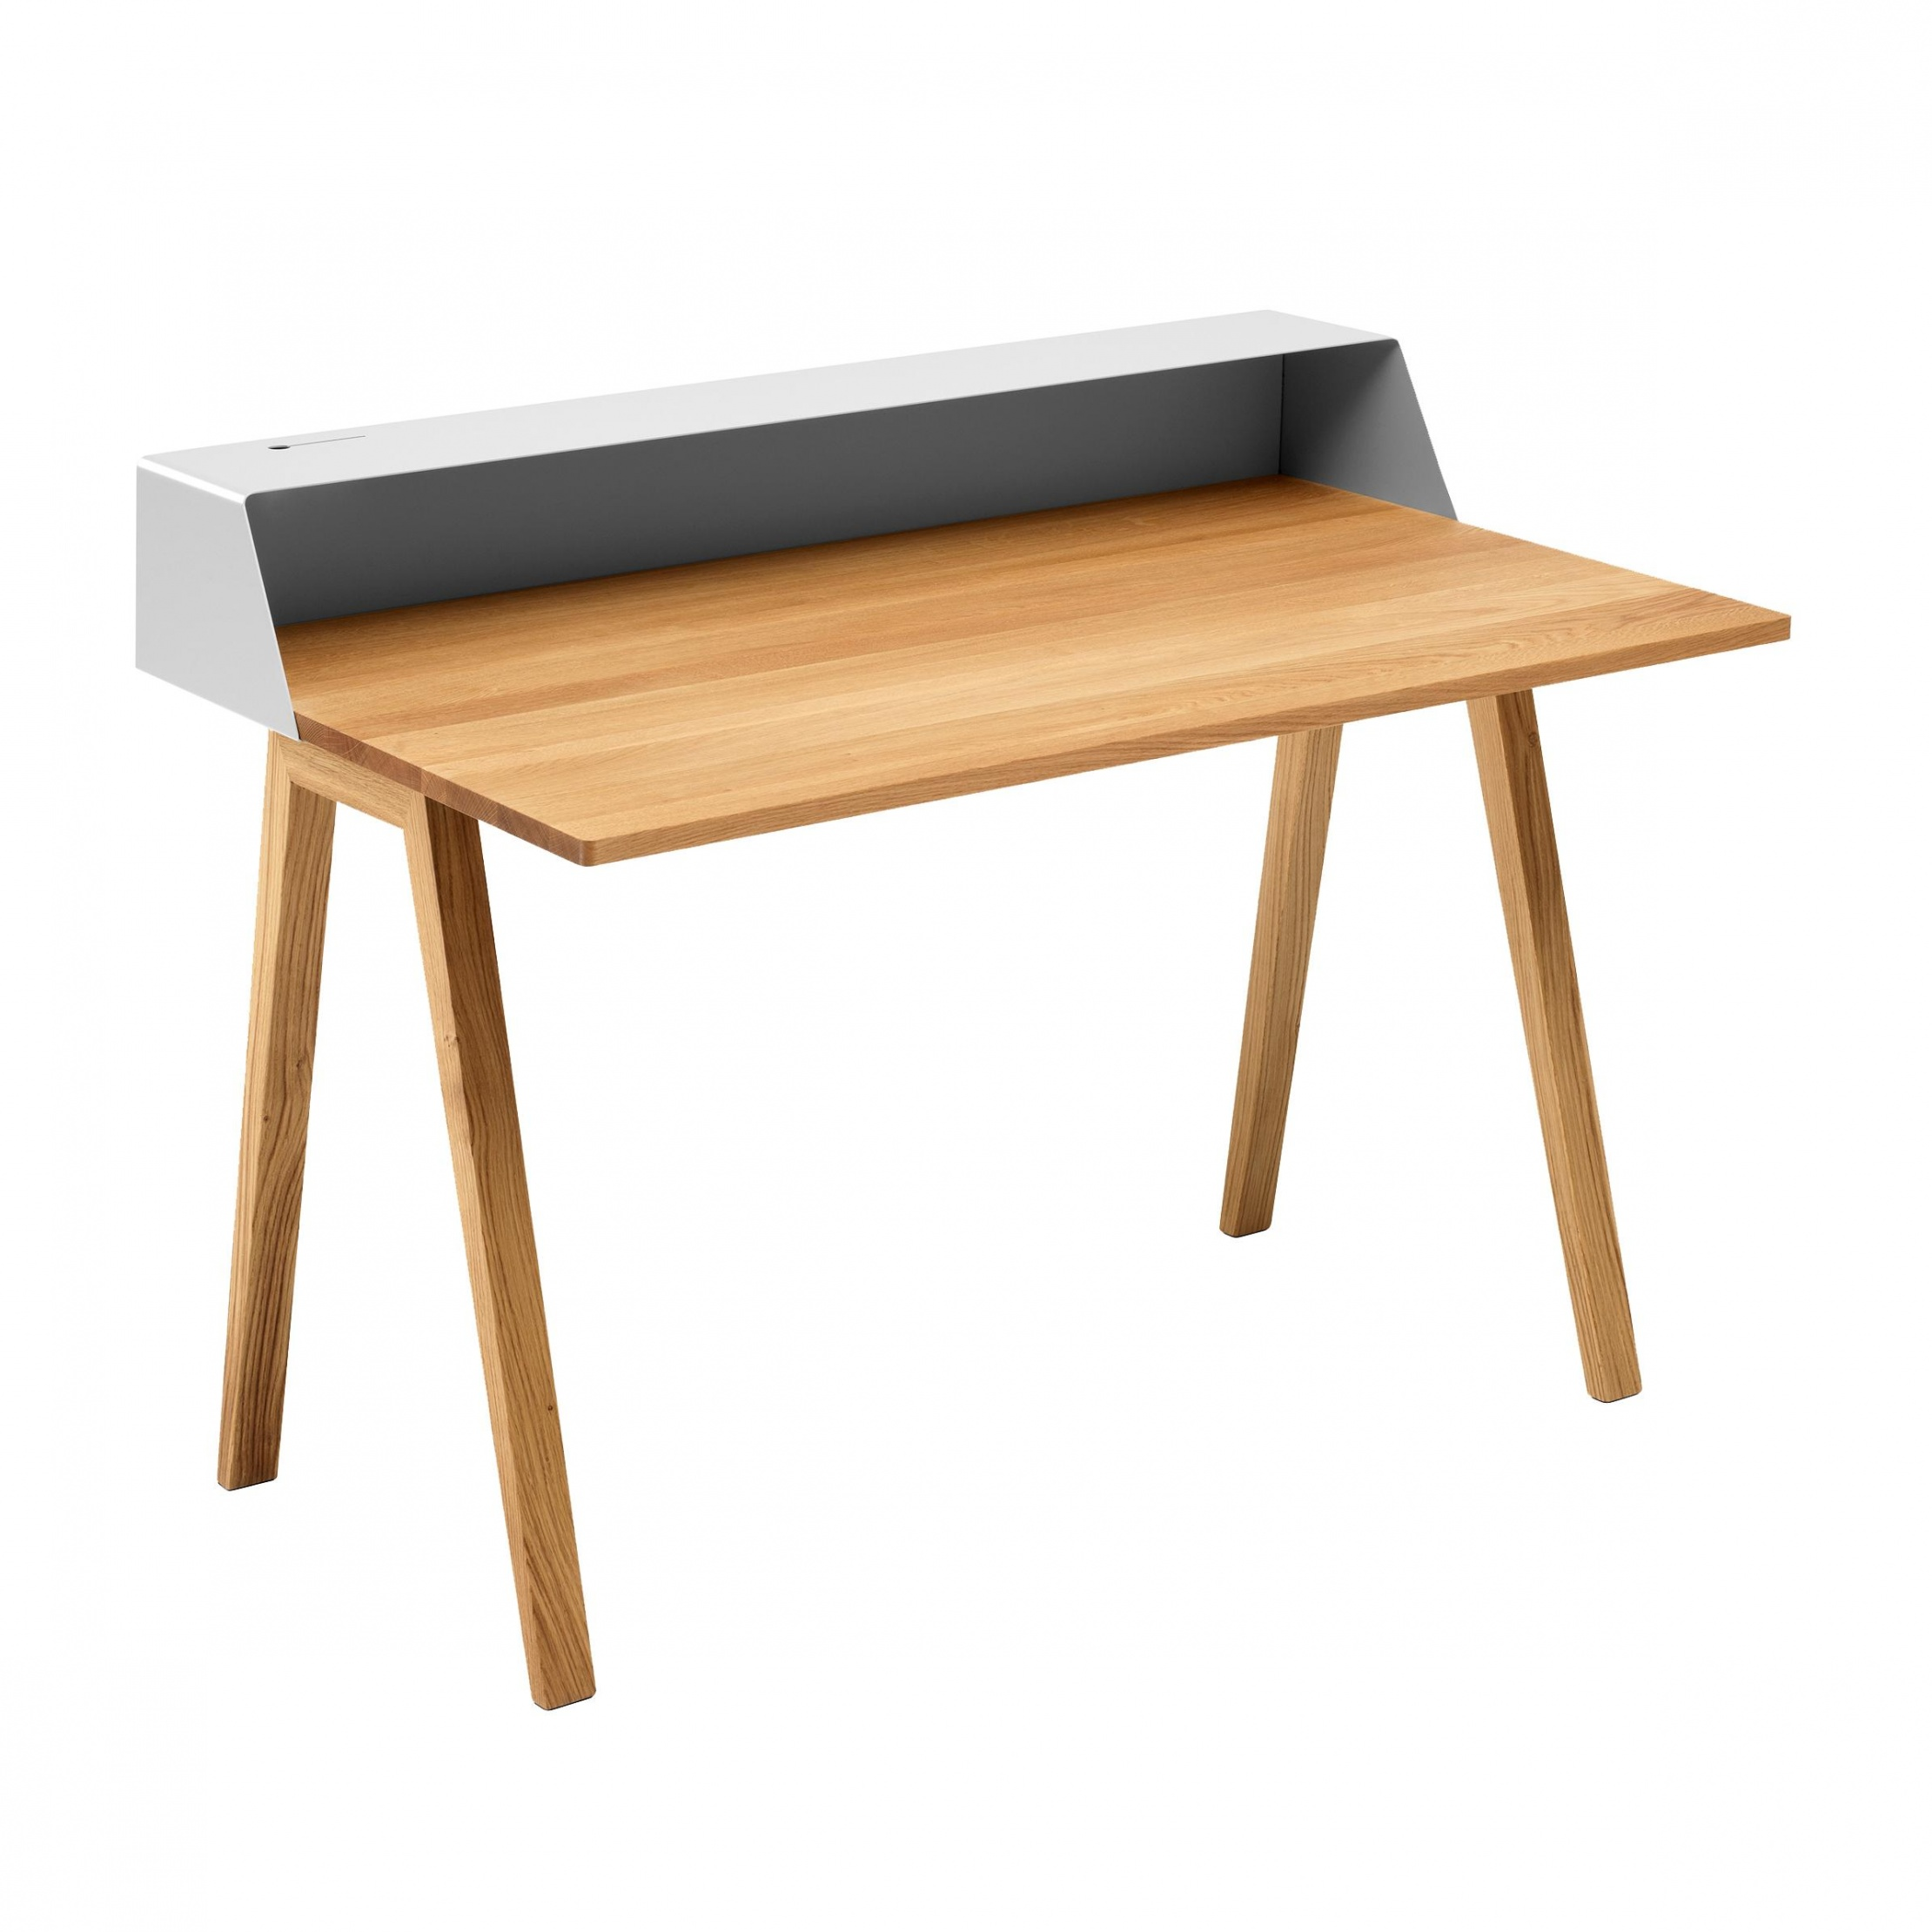 müller möbelfabrikation - PS05 - Secrétaire 120x75cm - blanc signal RAL 9003/mat/support en chêne/table top solid oak wood oiled